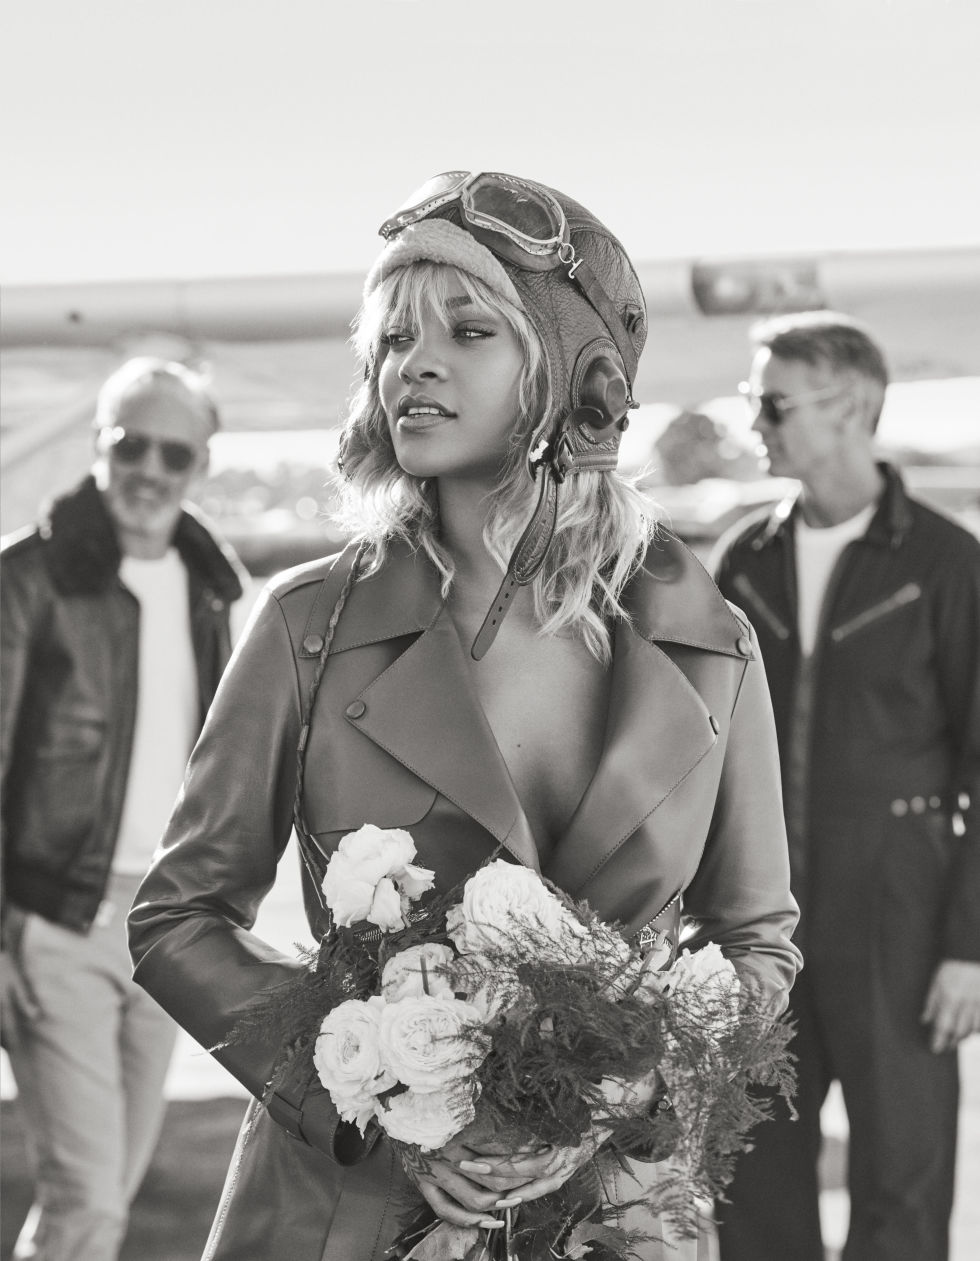 rihanna poses as amelia earhart rihanna channels amelia earhart tod s coat 6 200 212 644 5945